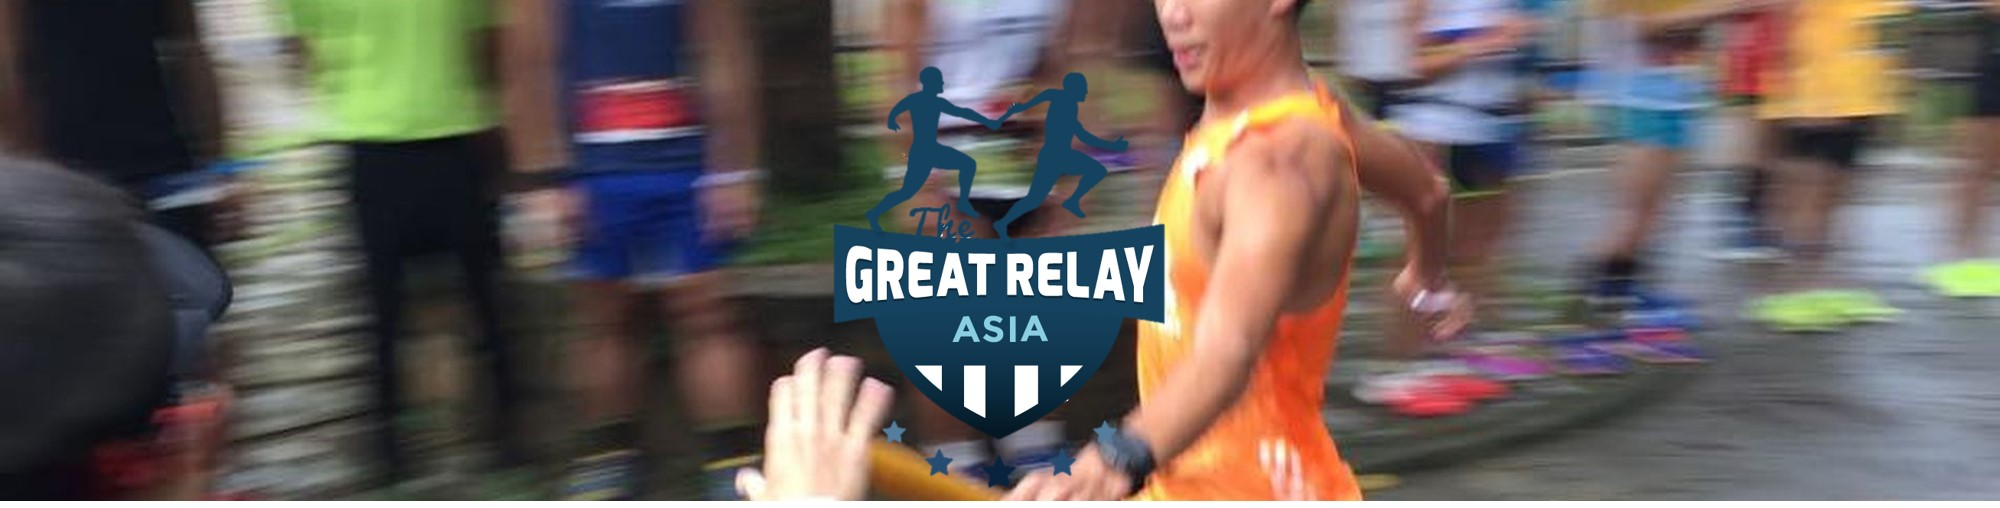 The Great Relay Hong Kong 2018